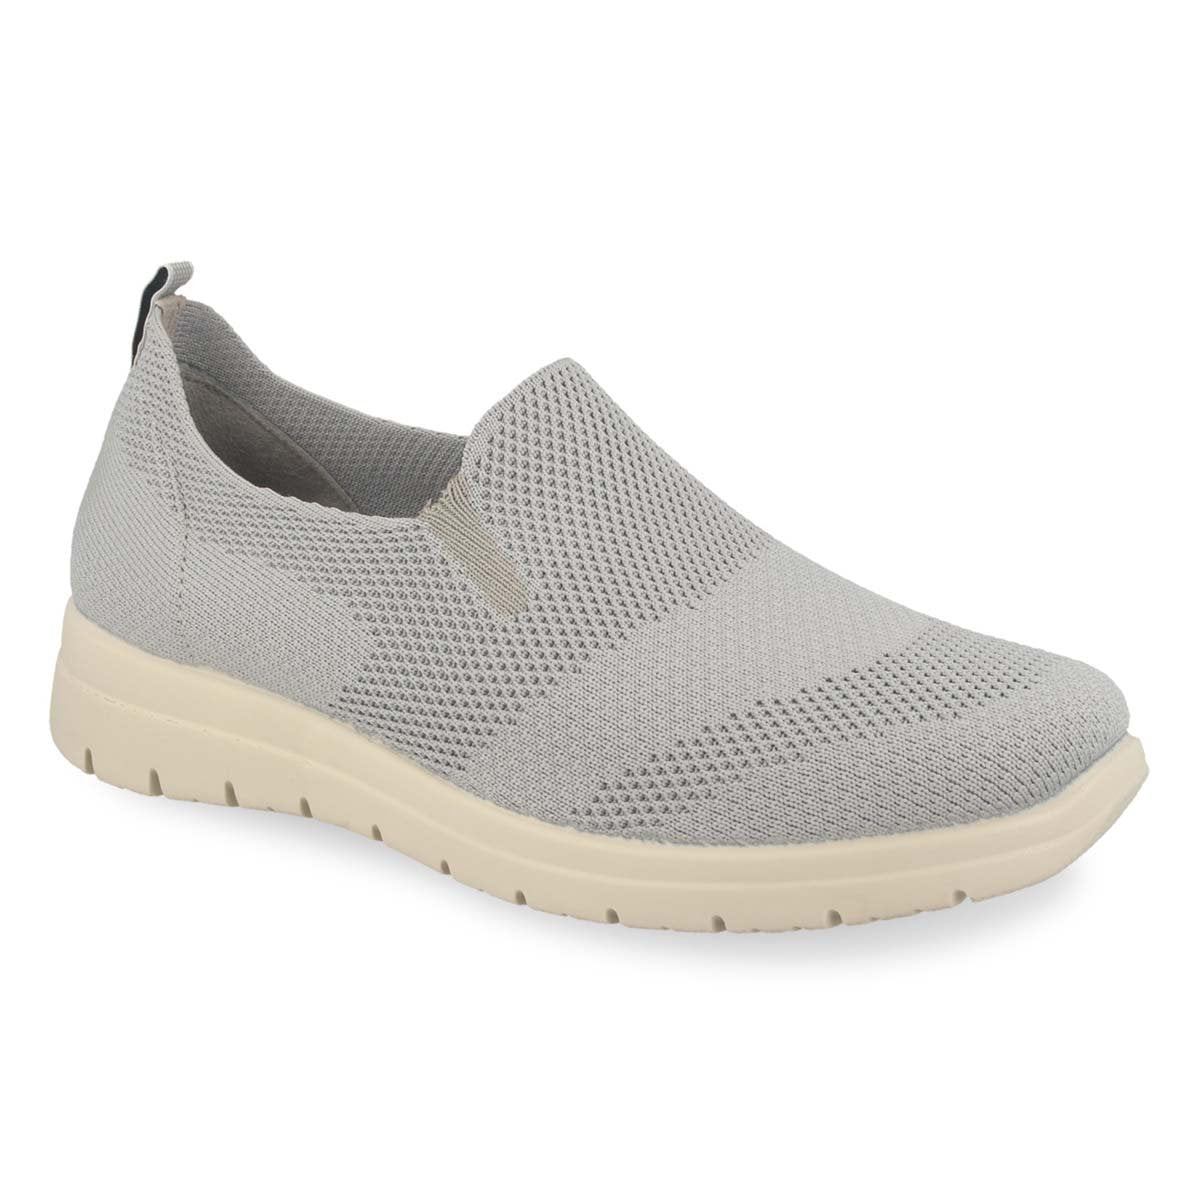 Photo of the Cloth Man Shoe Grey (66117kq)